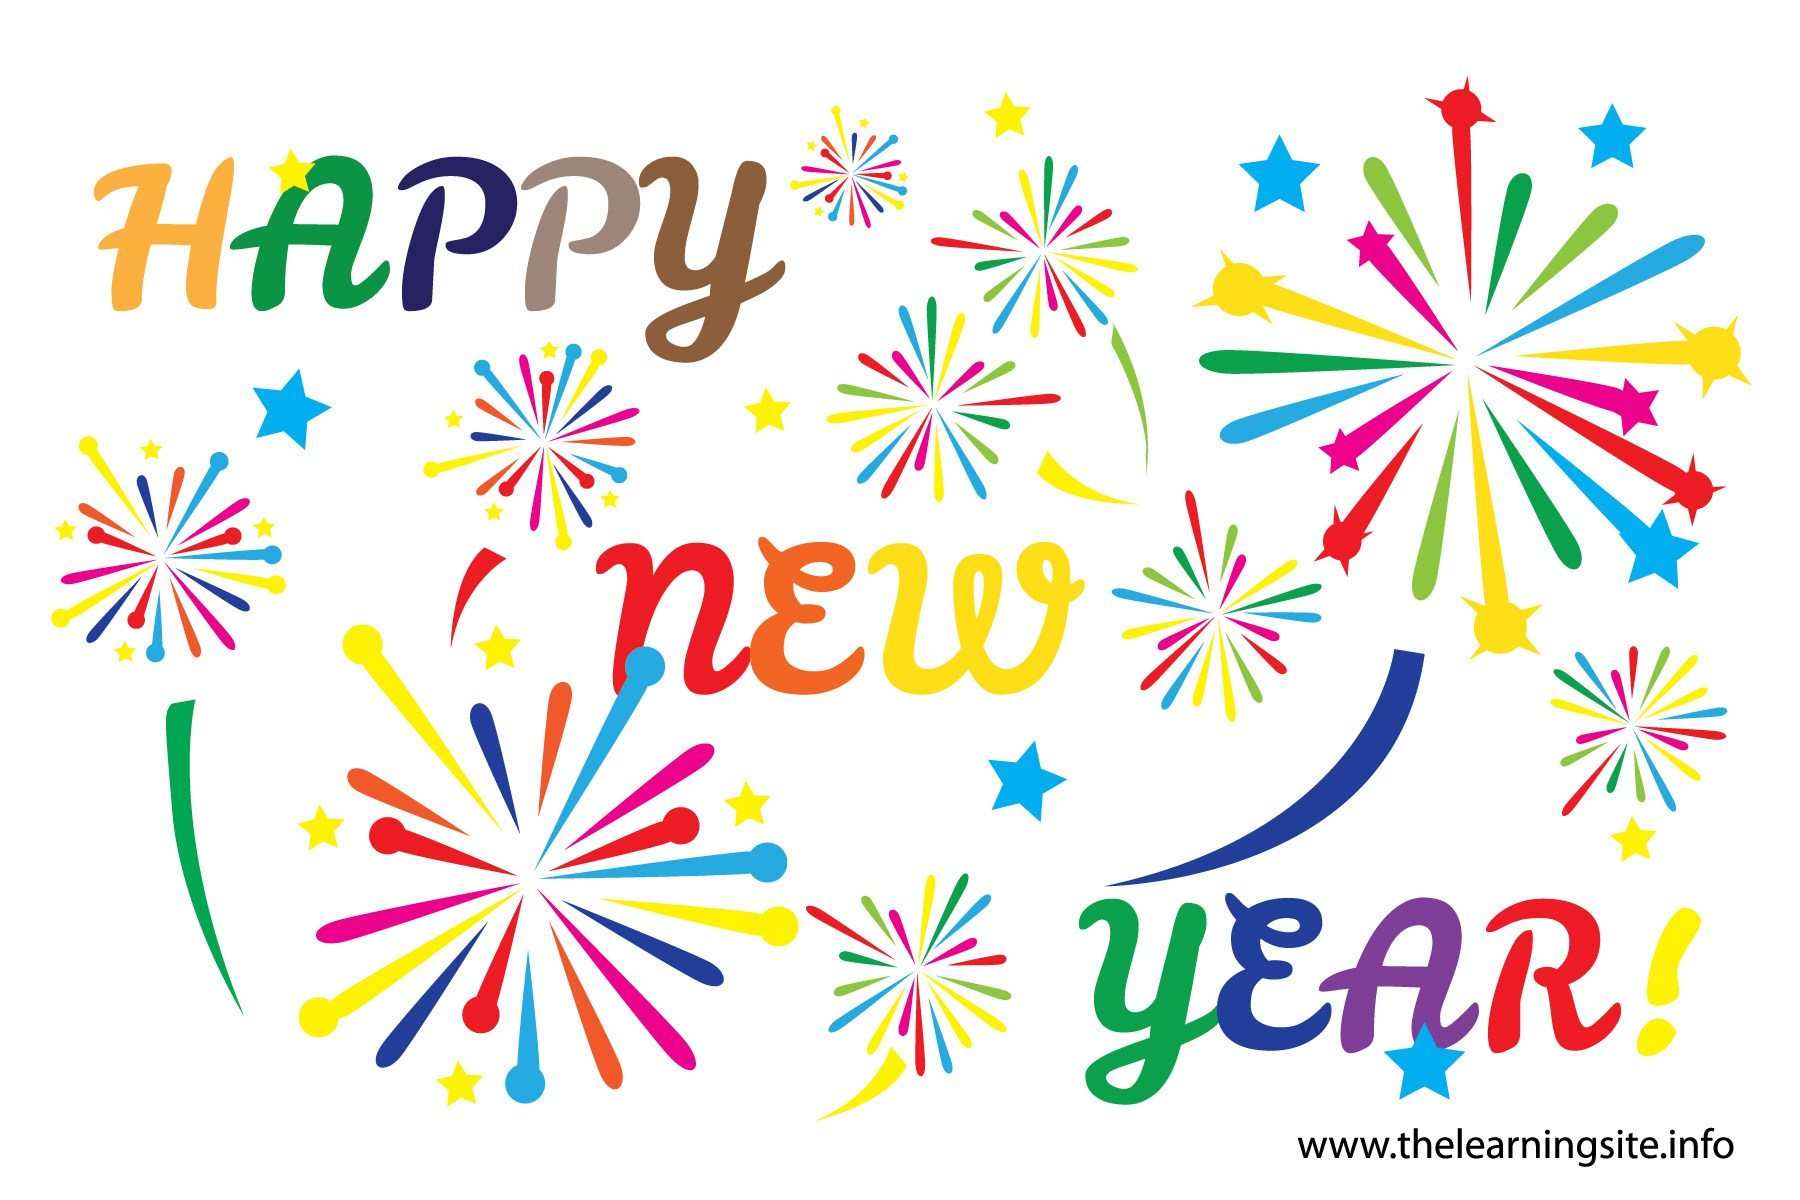 Celebrate clipart new years day. Year clip art merry